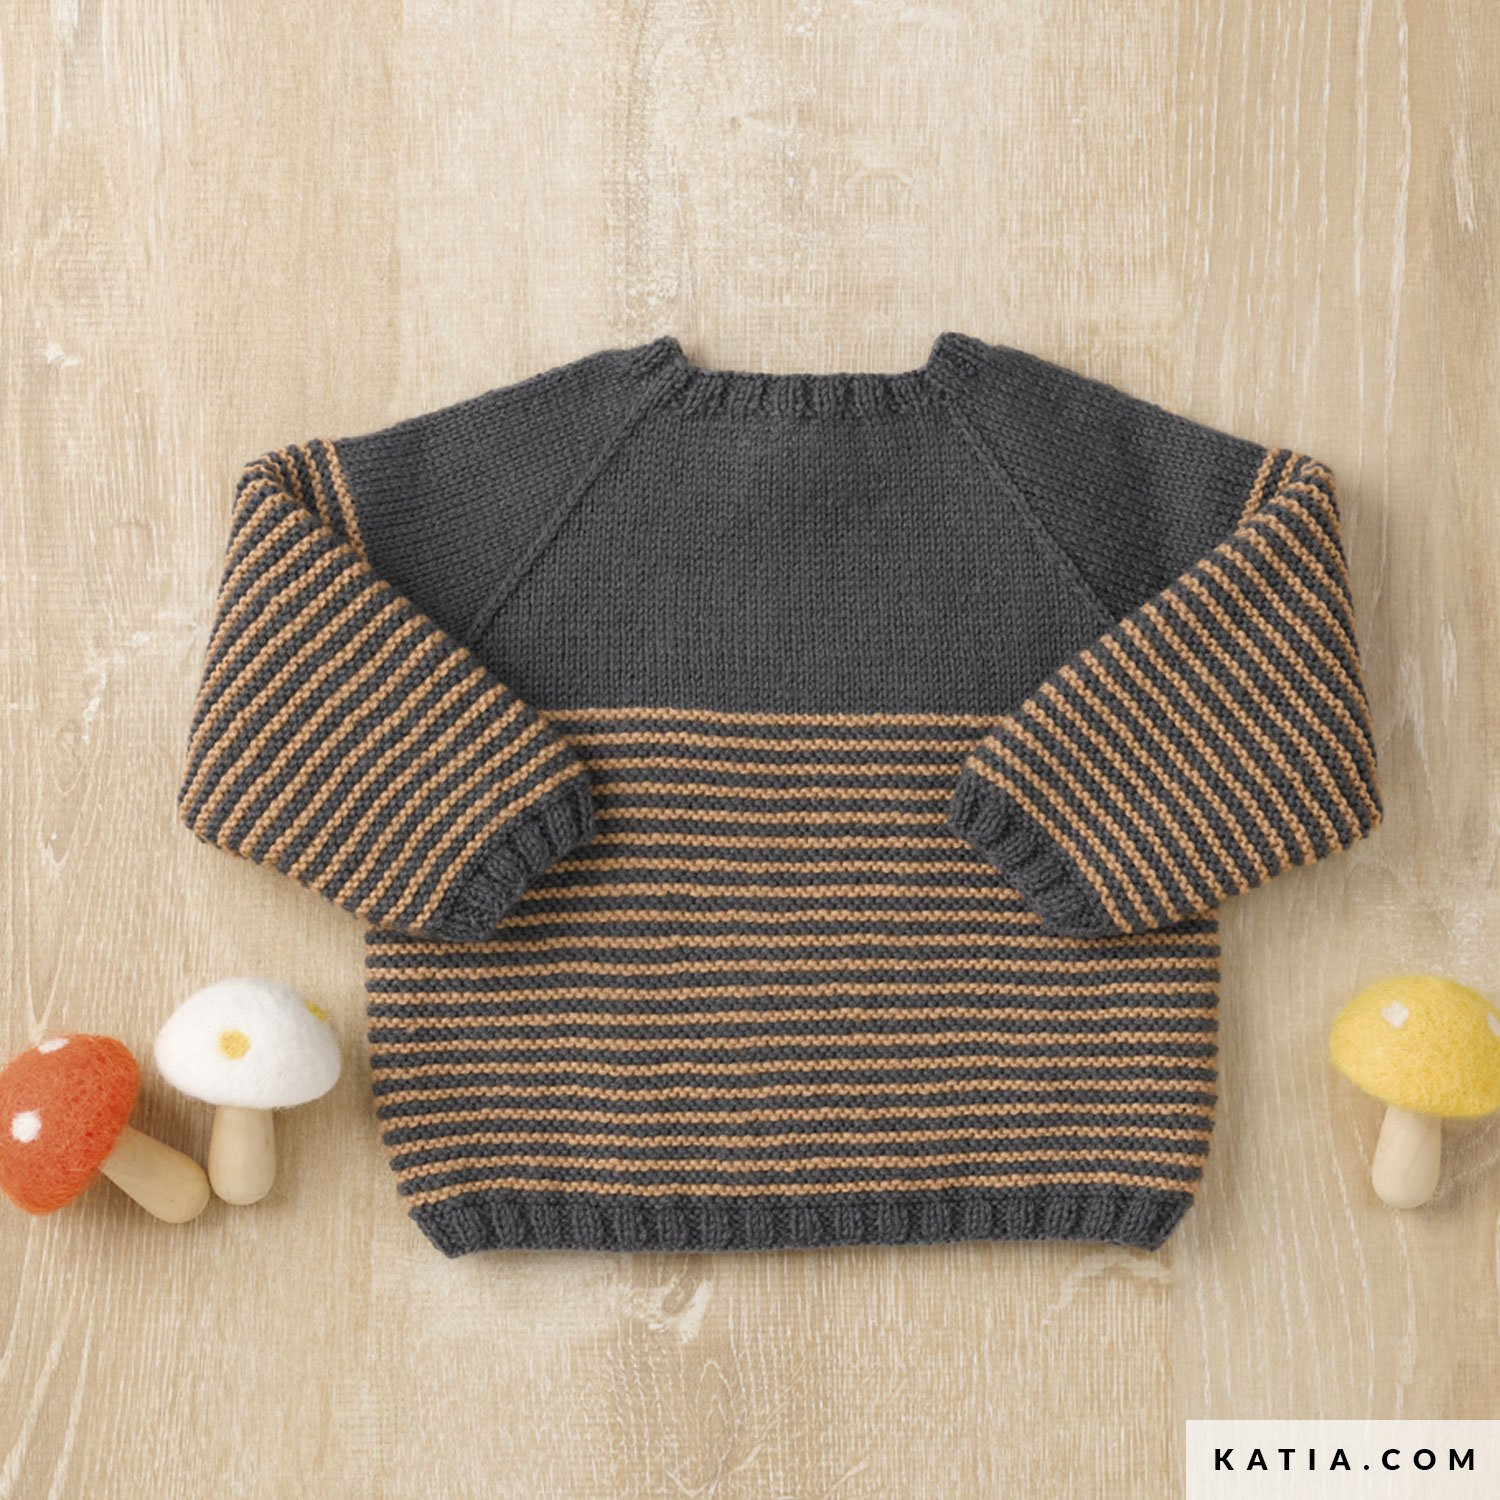 Pullover Baby Herbst Winter Modelle Anleitungen Katiacom